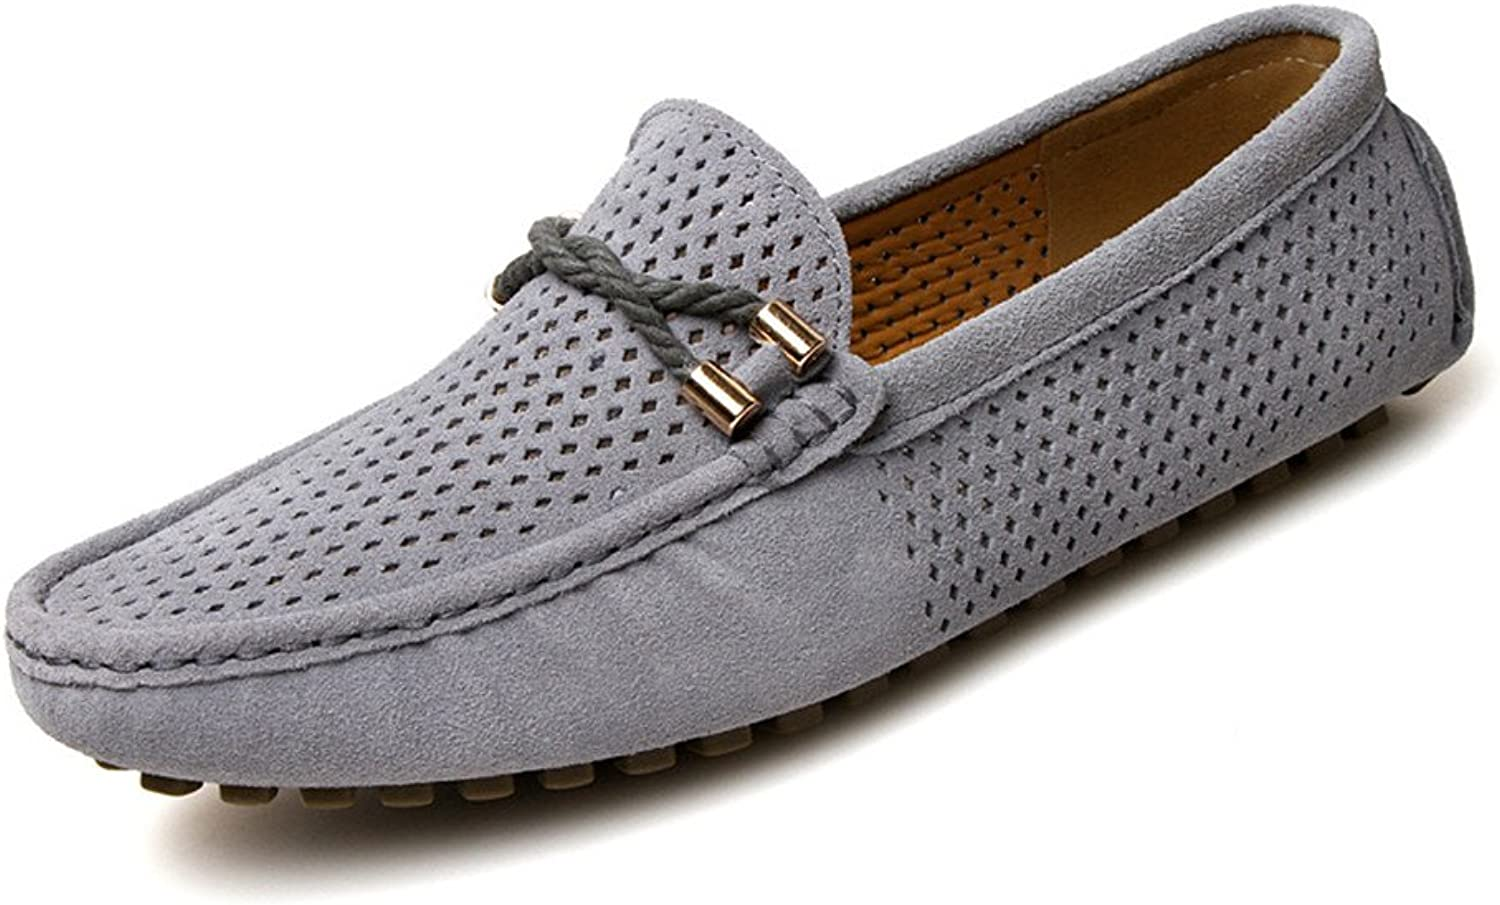 Elegdy Men's Driving Loafers Breathable Perforation Genuine Leather Vamp Penny Moccasins Dress shoes Men's Leather shoes